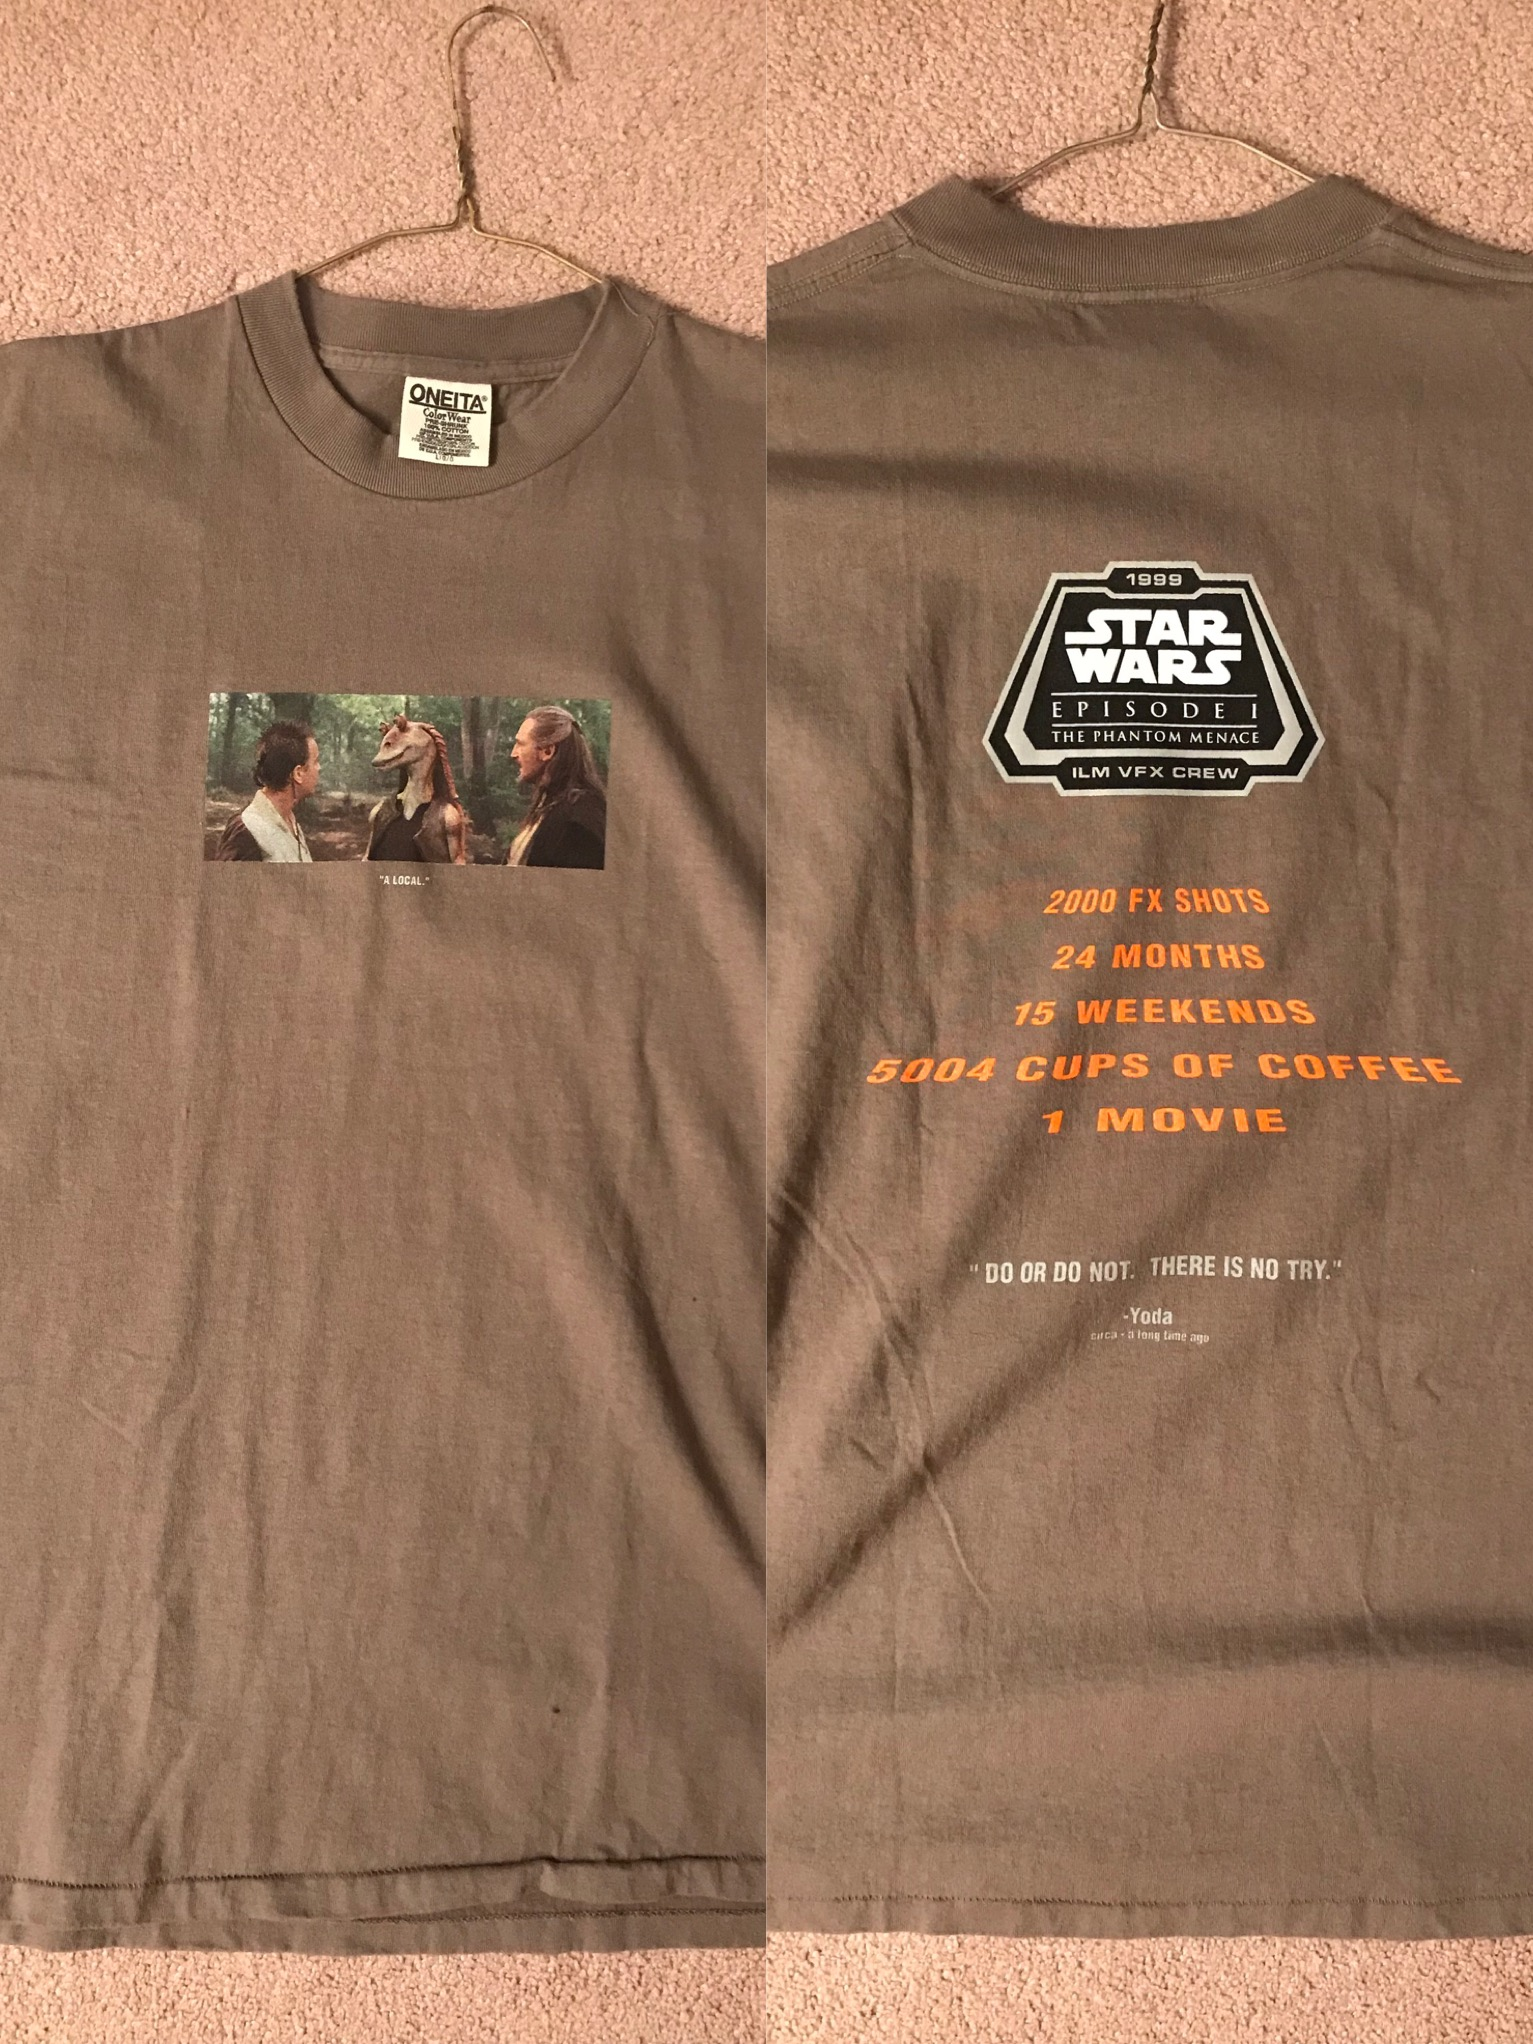 This awesome Episode 1 VFX crew shirt I found at a relatives house!